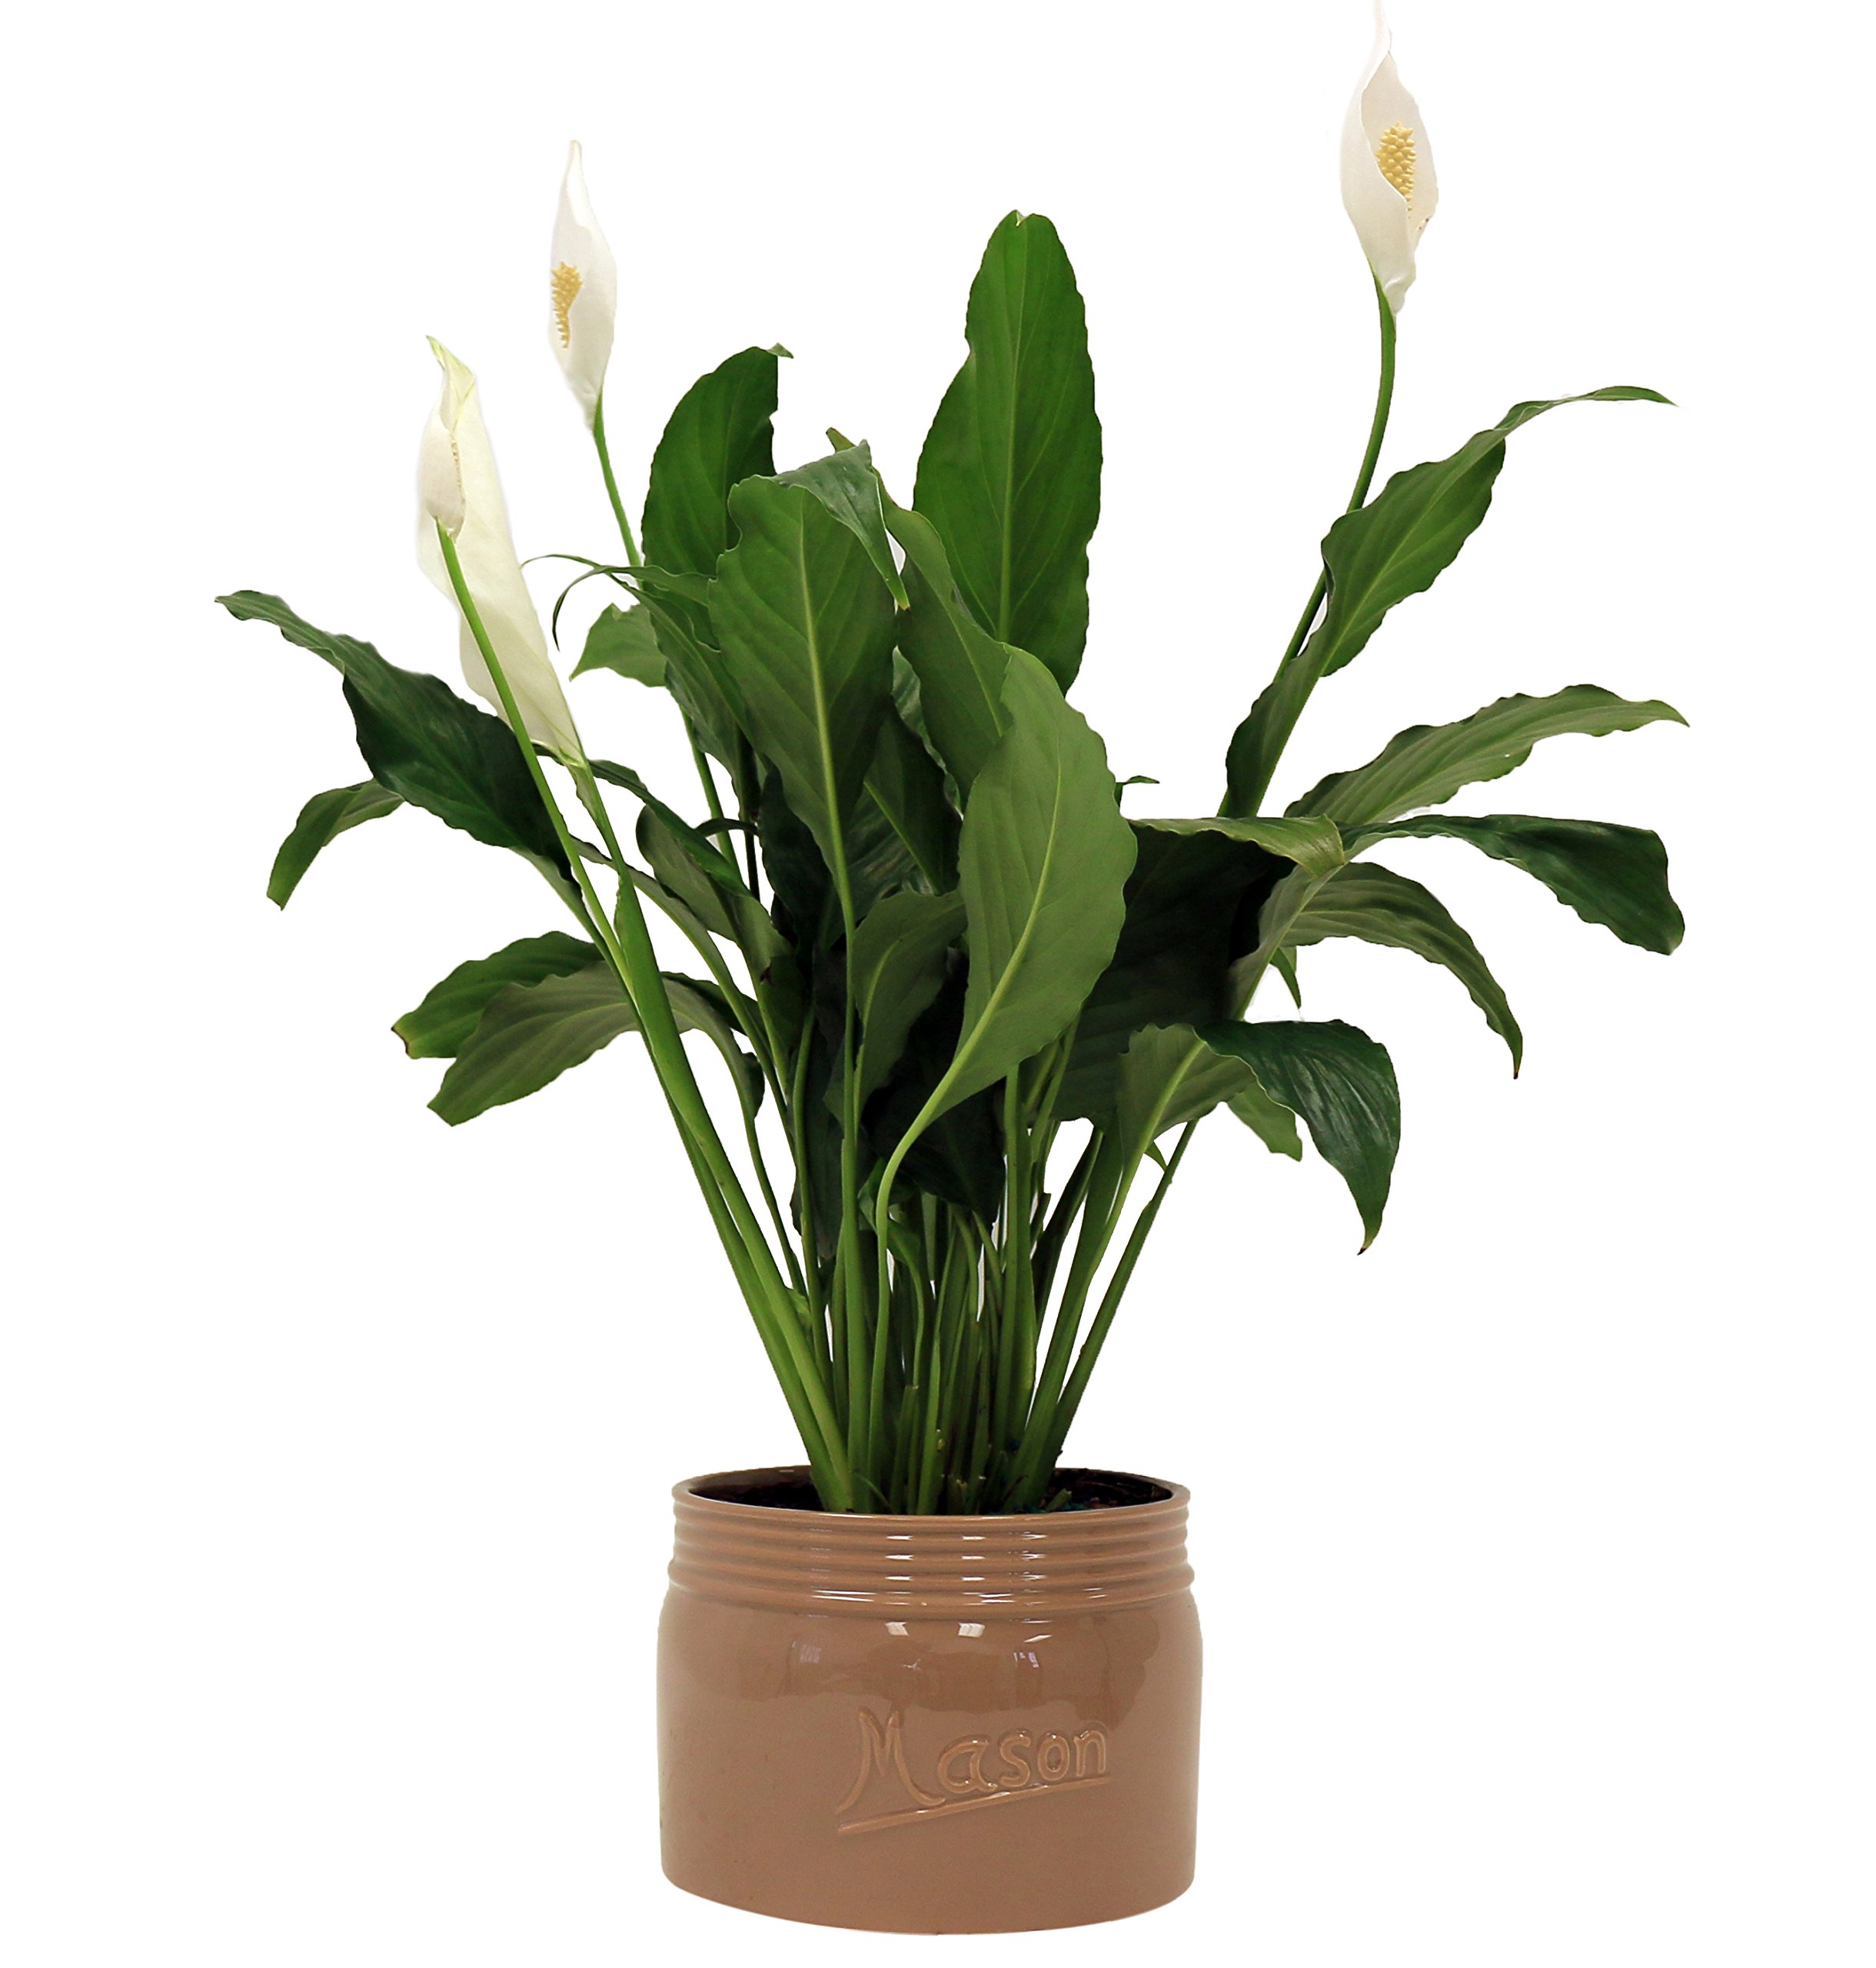 Costa Farms, Premium Live Indoor Peace Lily, Spathiphyllum, Tabletop Plant, Brown Ceramic Decorator Pot, Shipped Fresh From Our Farm, Excellent Gift by Costa Farms